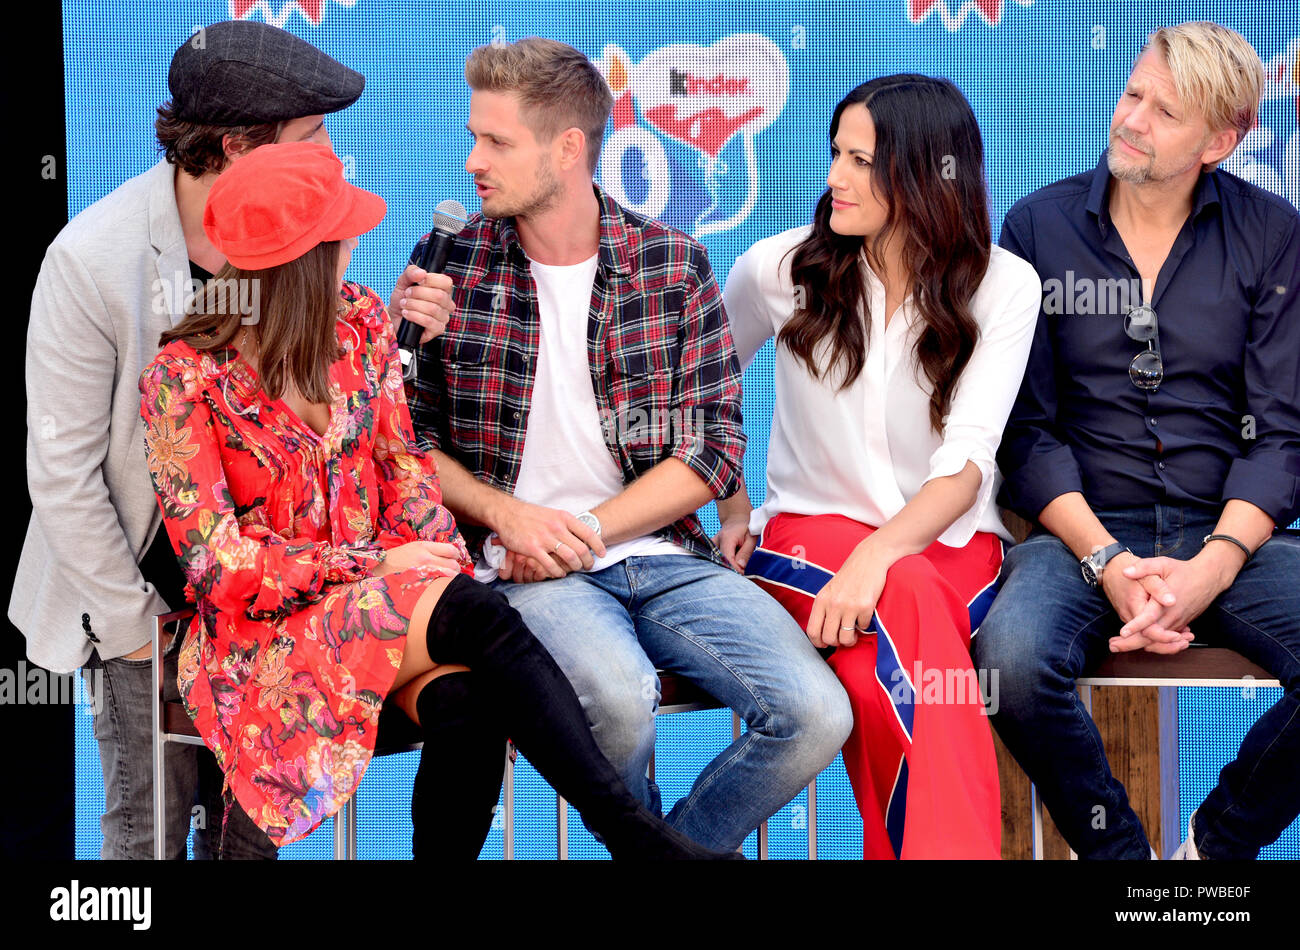 Soltau, Lower Saxony. 14th Oct, 2018. Singer Sarah Lombardi (l-r), presenter Tommy Scheel, actor Jörn Schlönvoigt, actress Bettina Zimmermann and actor Kai Wiesinger sit on a stage in Heide-Park during an event of the company Kinder Schokolade. The Kinder brand celebrates its 50th anniversary with a family celebration in the park. Credit: Hauke-Christian Dittrich/dpa/Alamy Live News Stock Photo